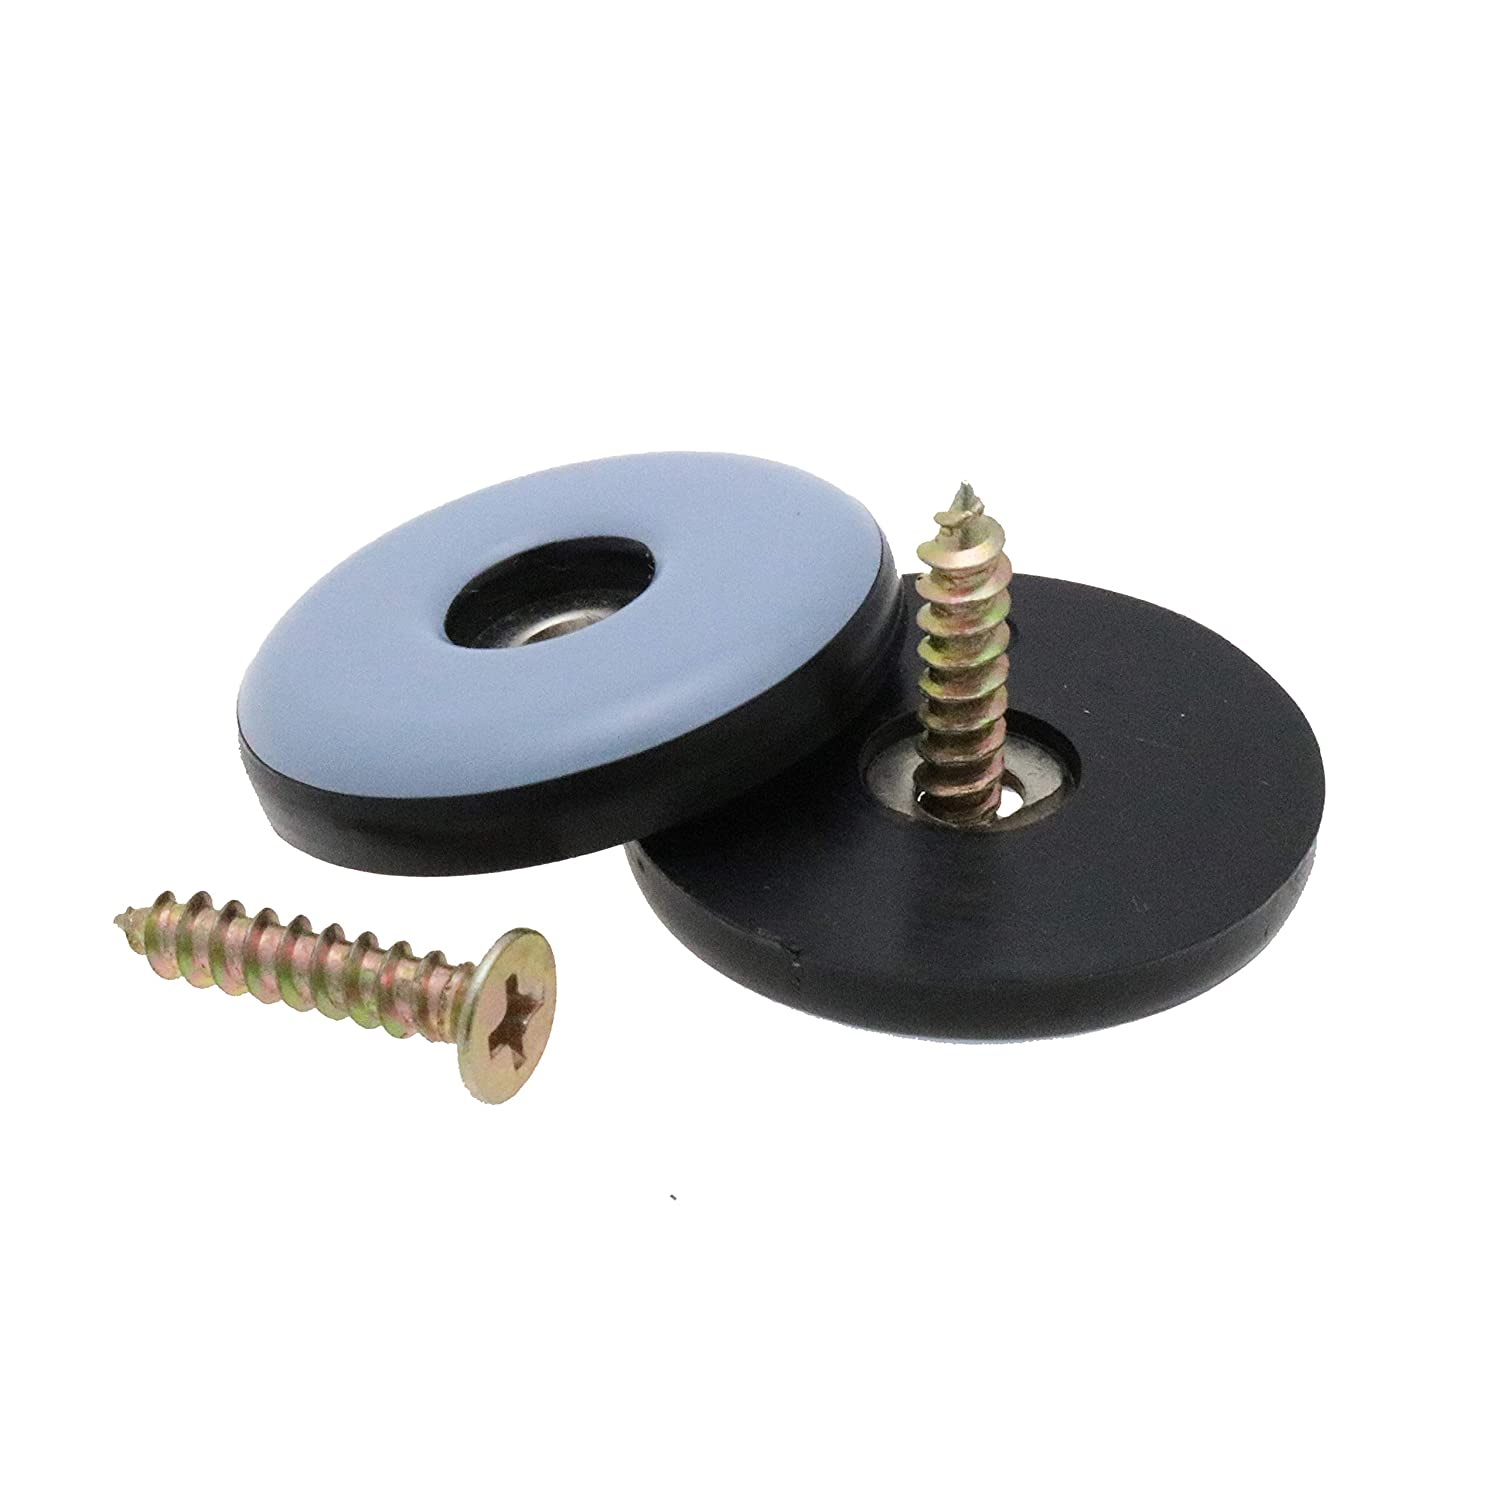 Teflon Base Gliders PTFE Glides For Chairs /& Appliances Screw Gliders Sliders Pack of 16 30mm Screw On Teflon Glides